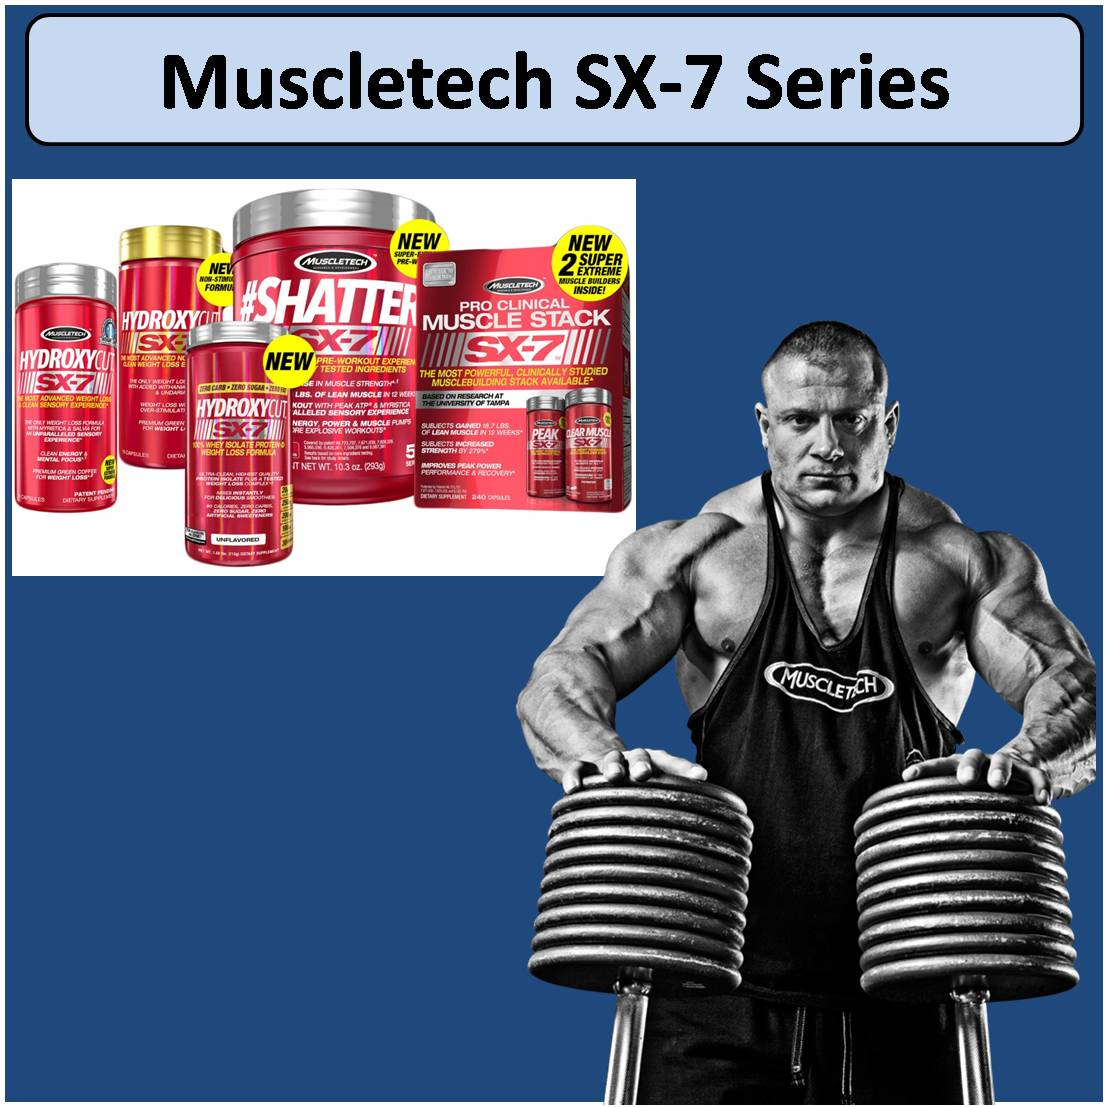 Muscletech SX-7 Series